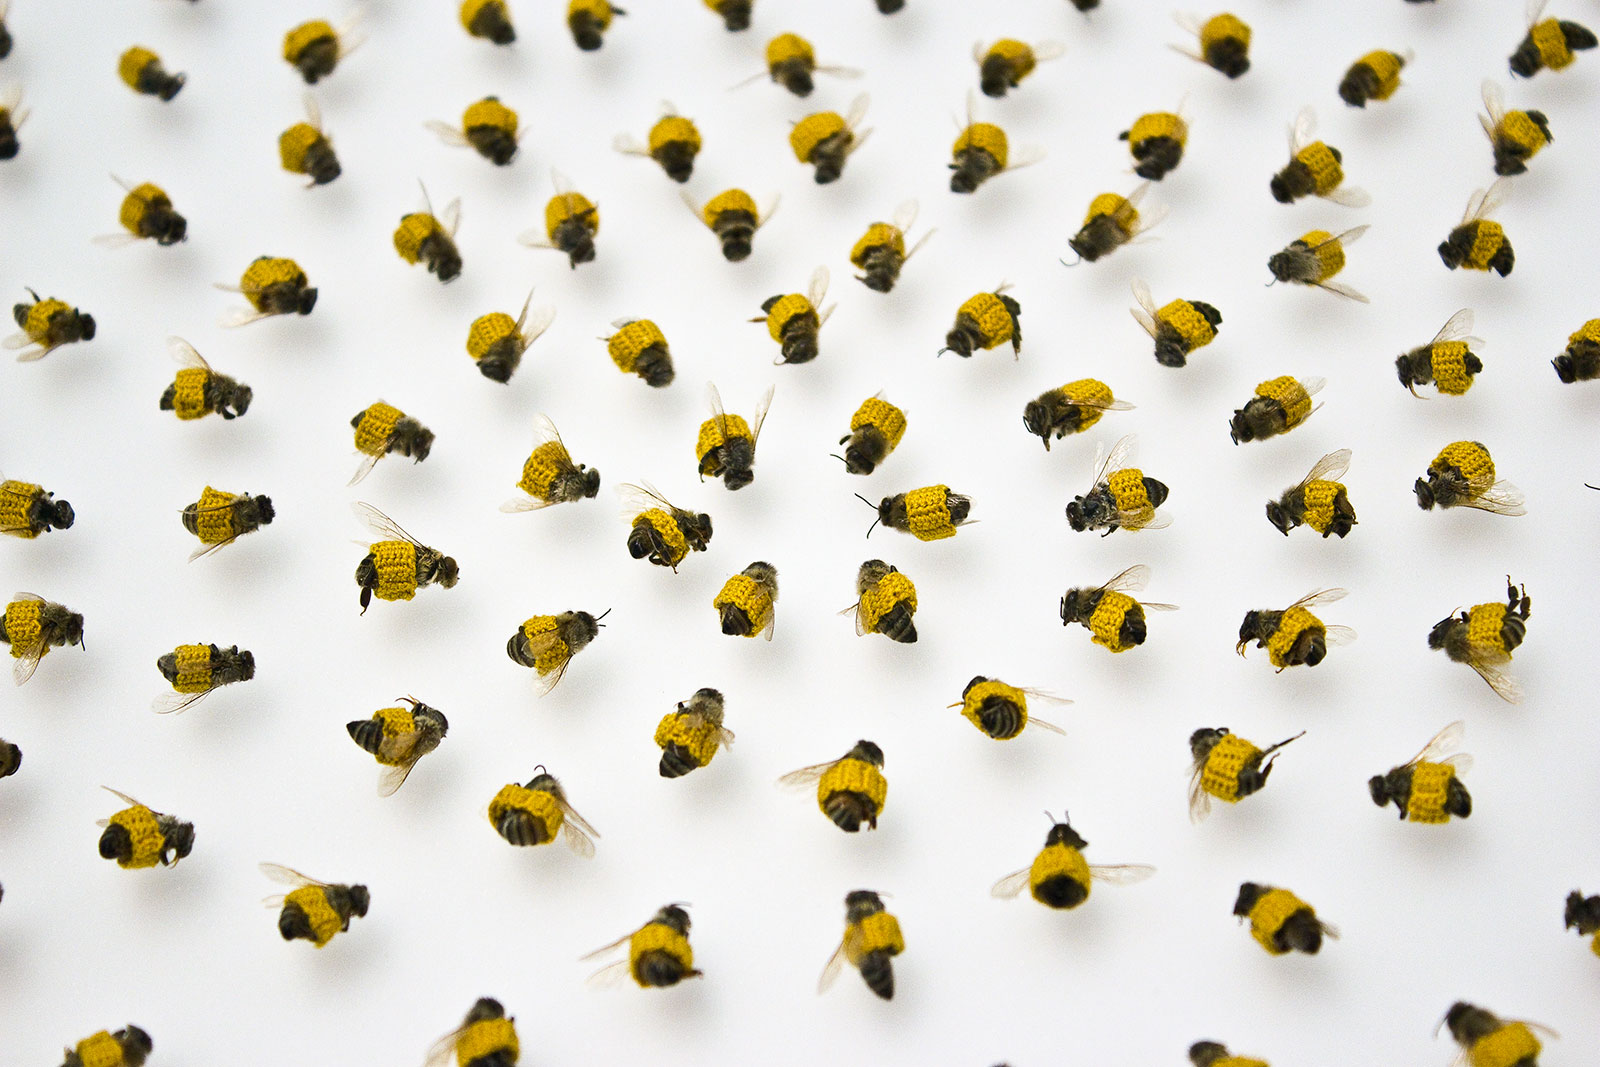 bees with knit coverings